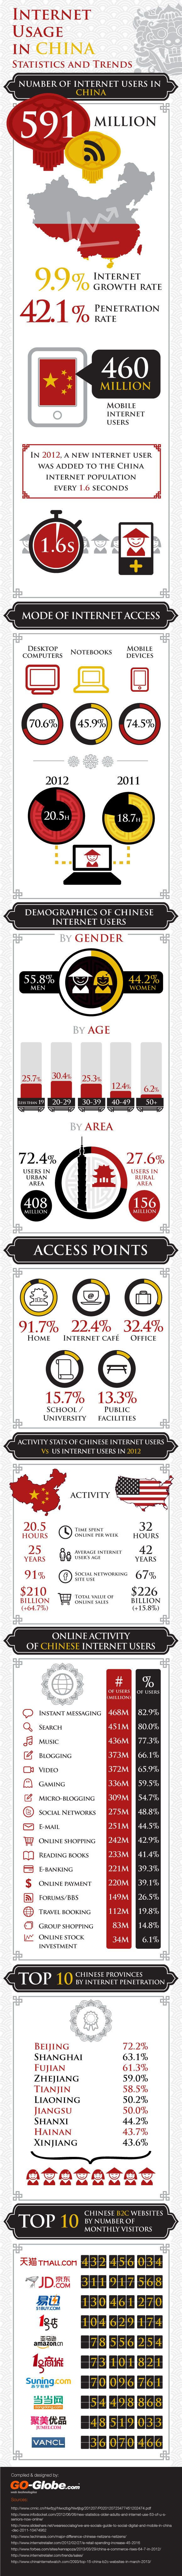 All the facts and stats on China's 591 million web users